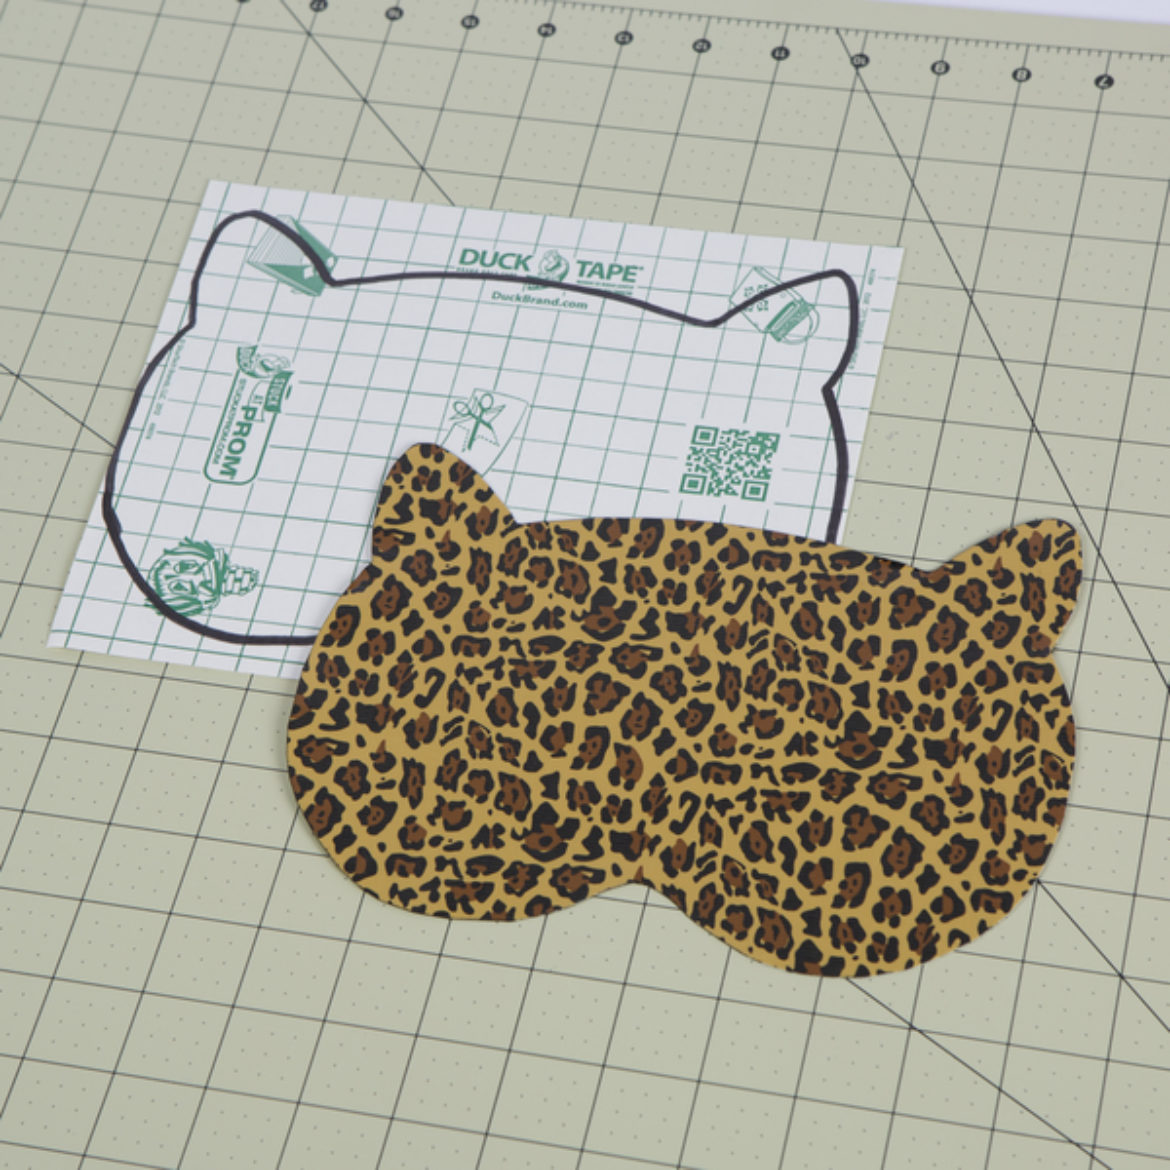 On a Duck Tape sheet, cut out the shape of the animals face